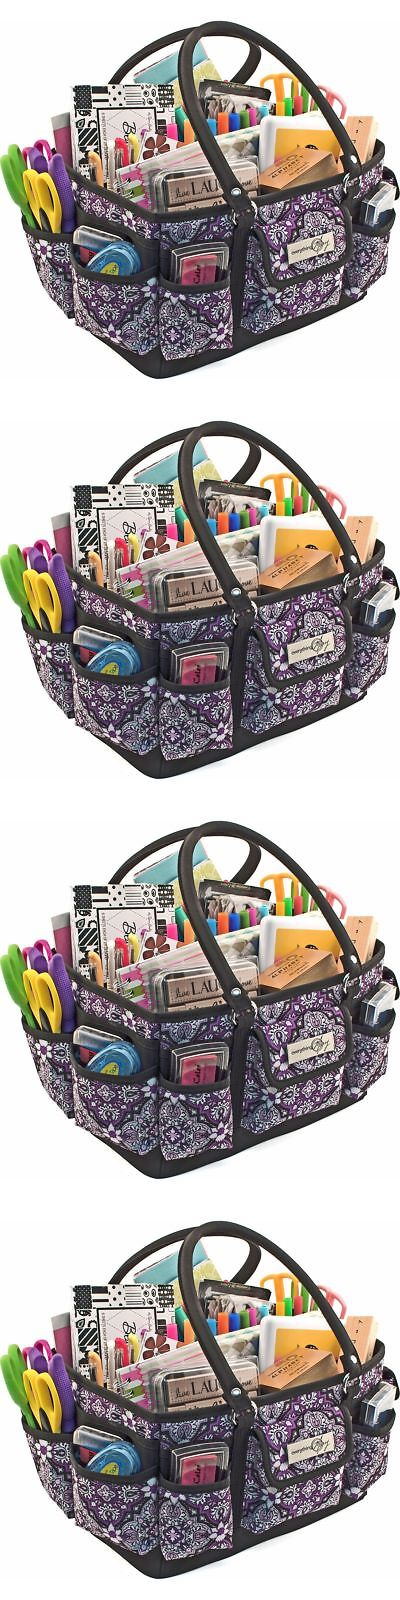 ba43b4aeb2 Scrapbooking Totes 146401  Craft Storage Tote Organizer Bag Scrapbook Art  Case Supplies Sewing Travel Sew -  BUY IT NOW ONLY   39.01 on eBay!